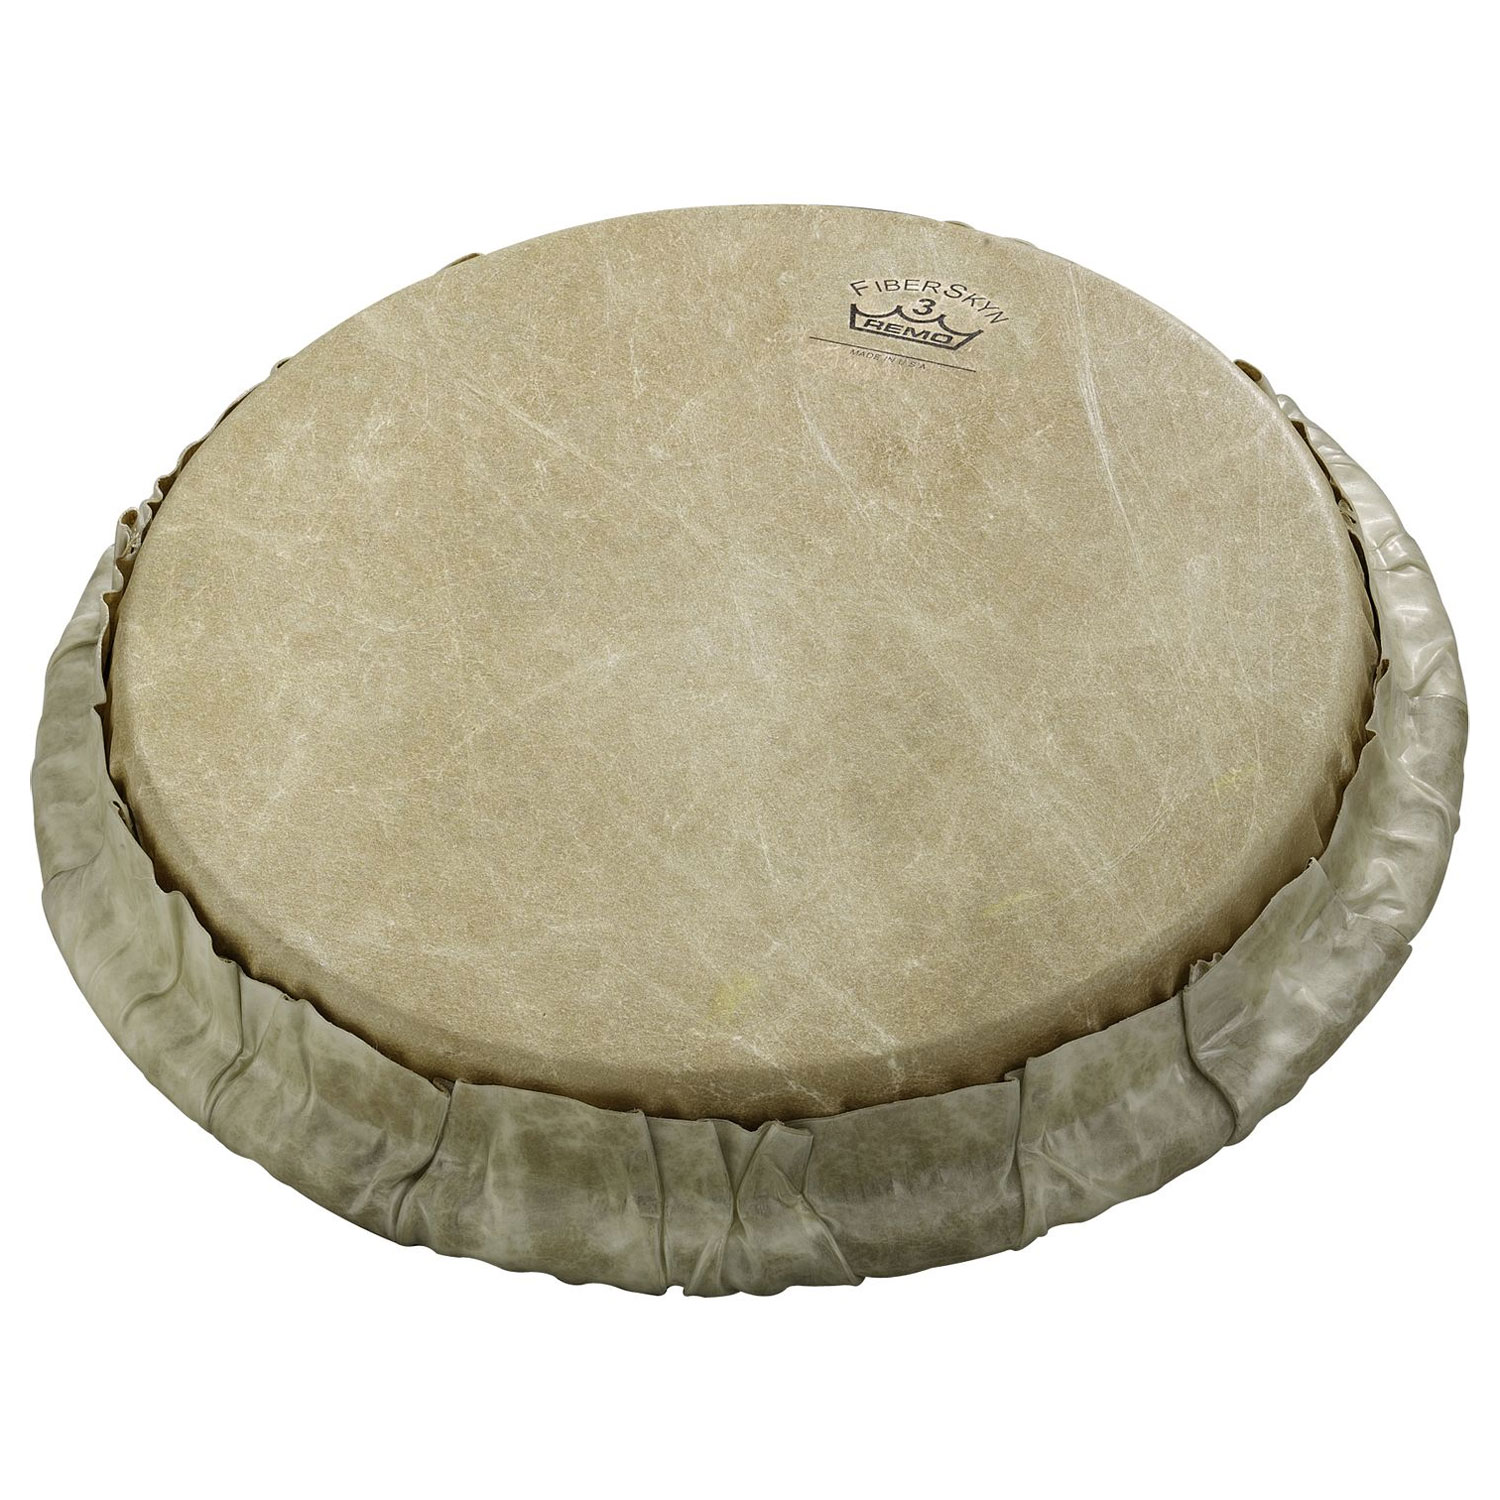 "Remo 9"" Tucked Skyndeep Bongo Drum Head with Calfskin Graphic"